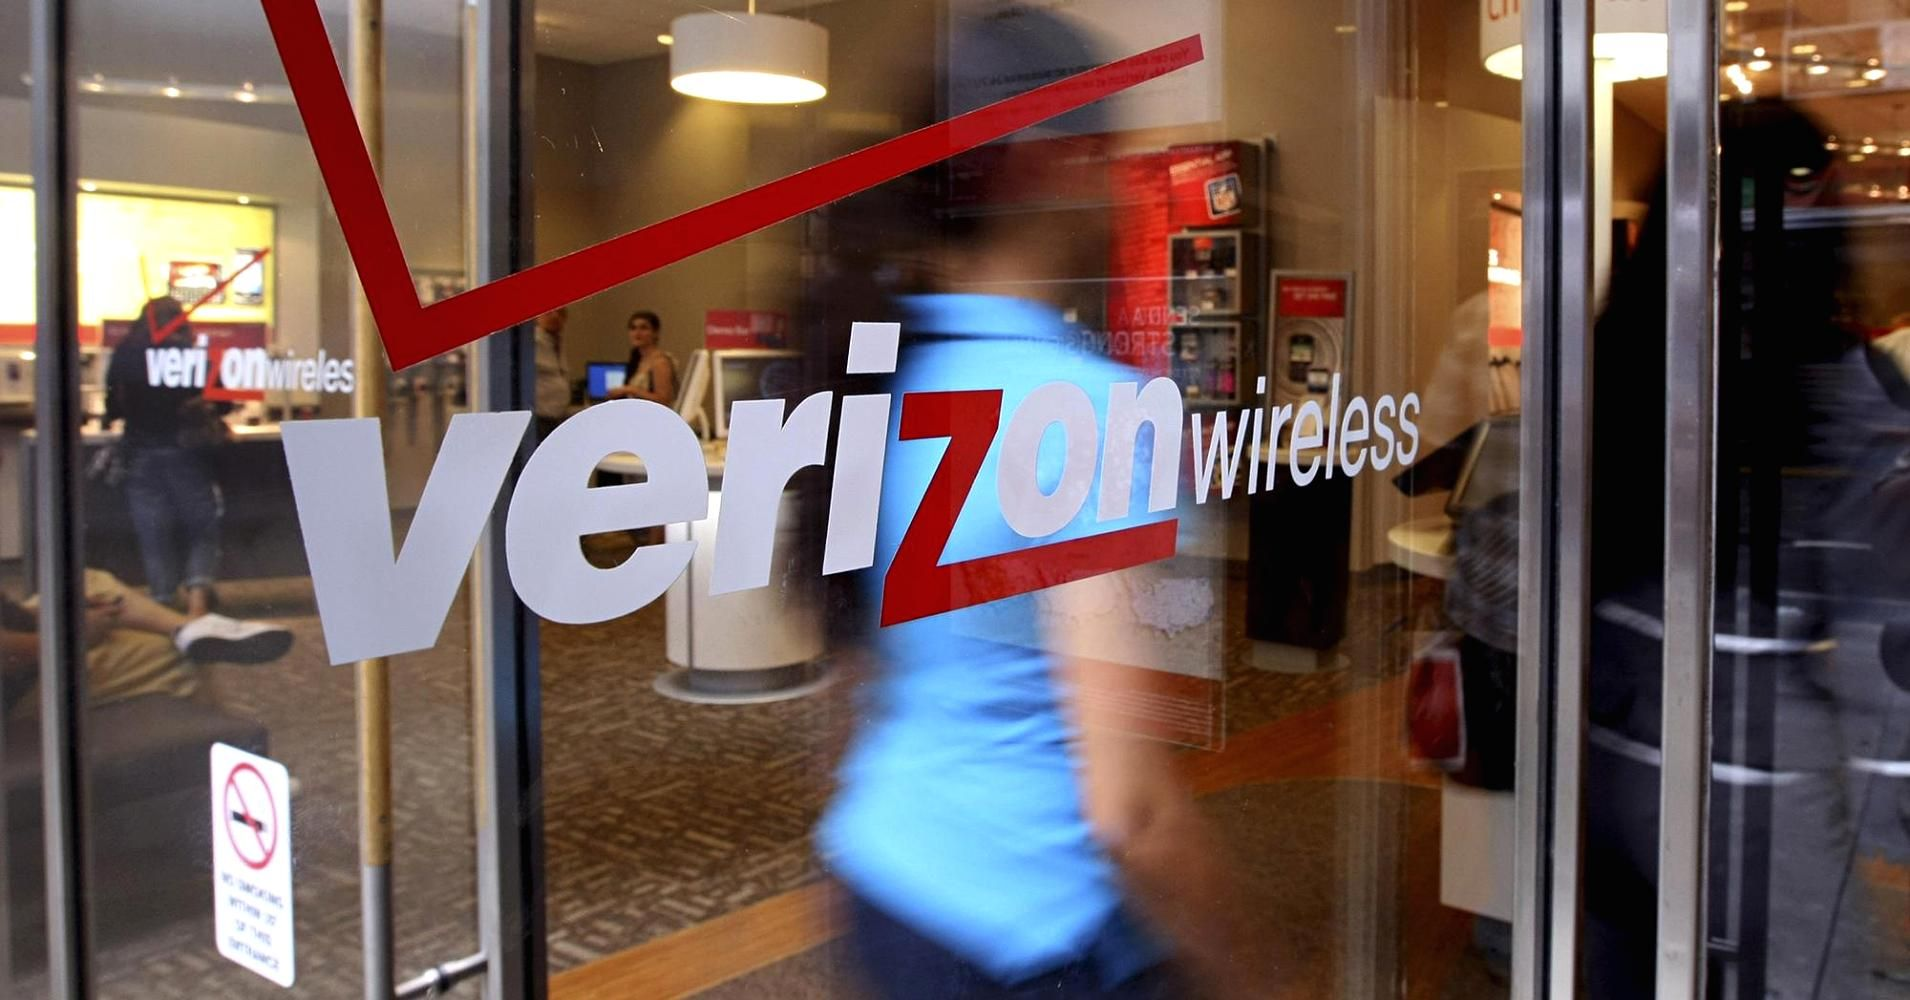 US said to investigate AT&T and Verizon over wireless